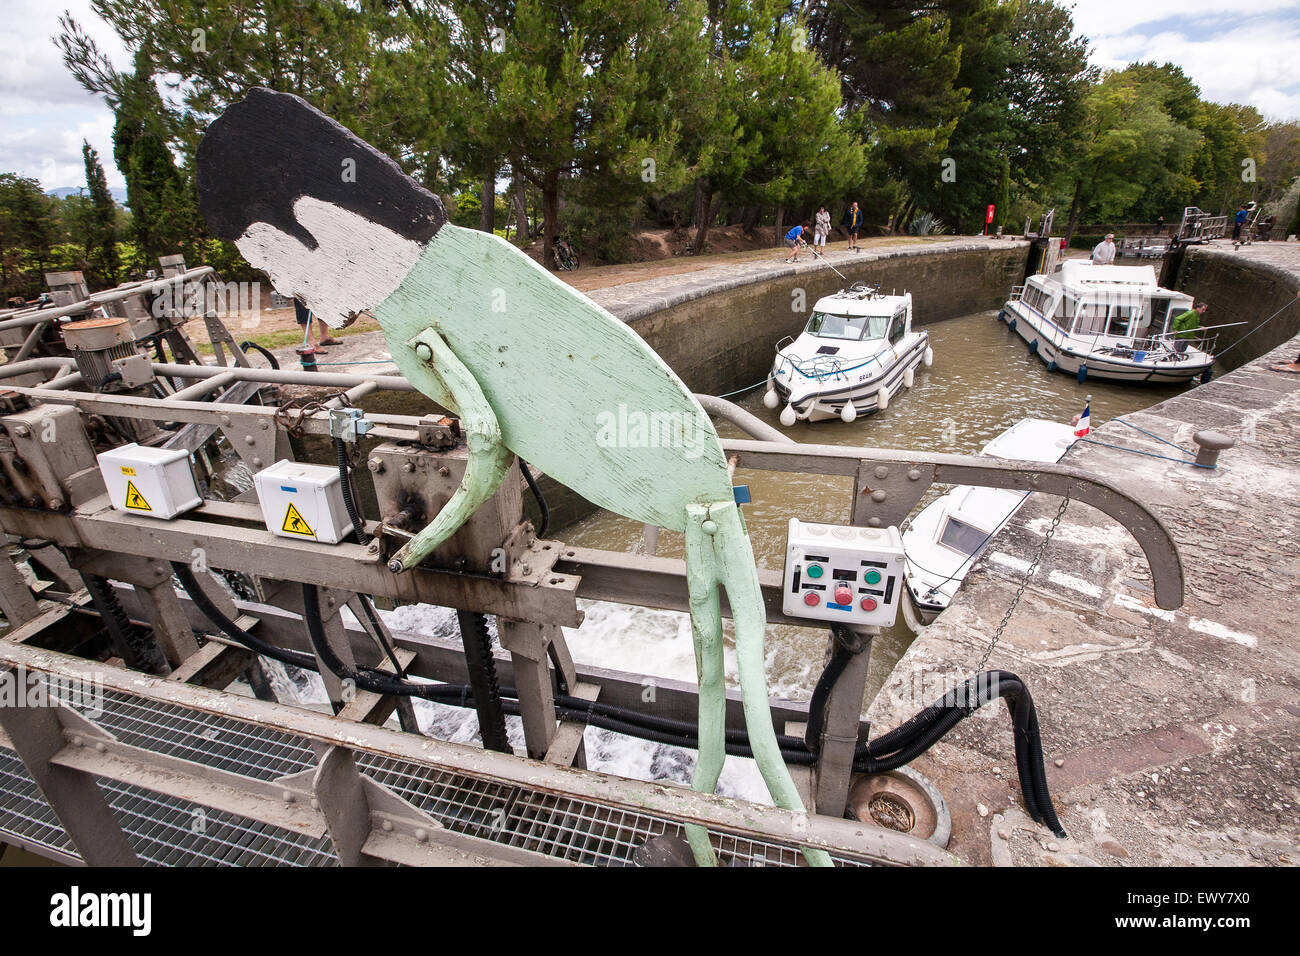 Cruise boats at lock on popular Canal du Midi, France. July. The Canal du Midi is a 240 kms long canal in Southern - Stock Image